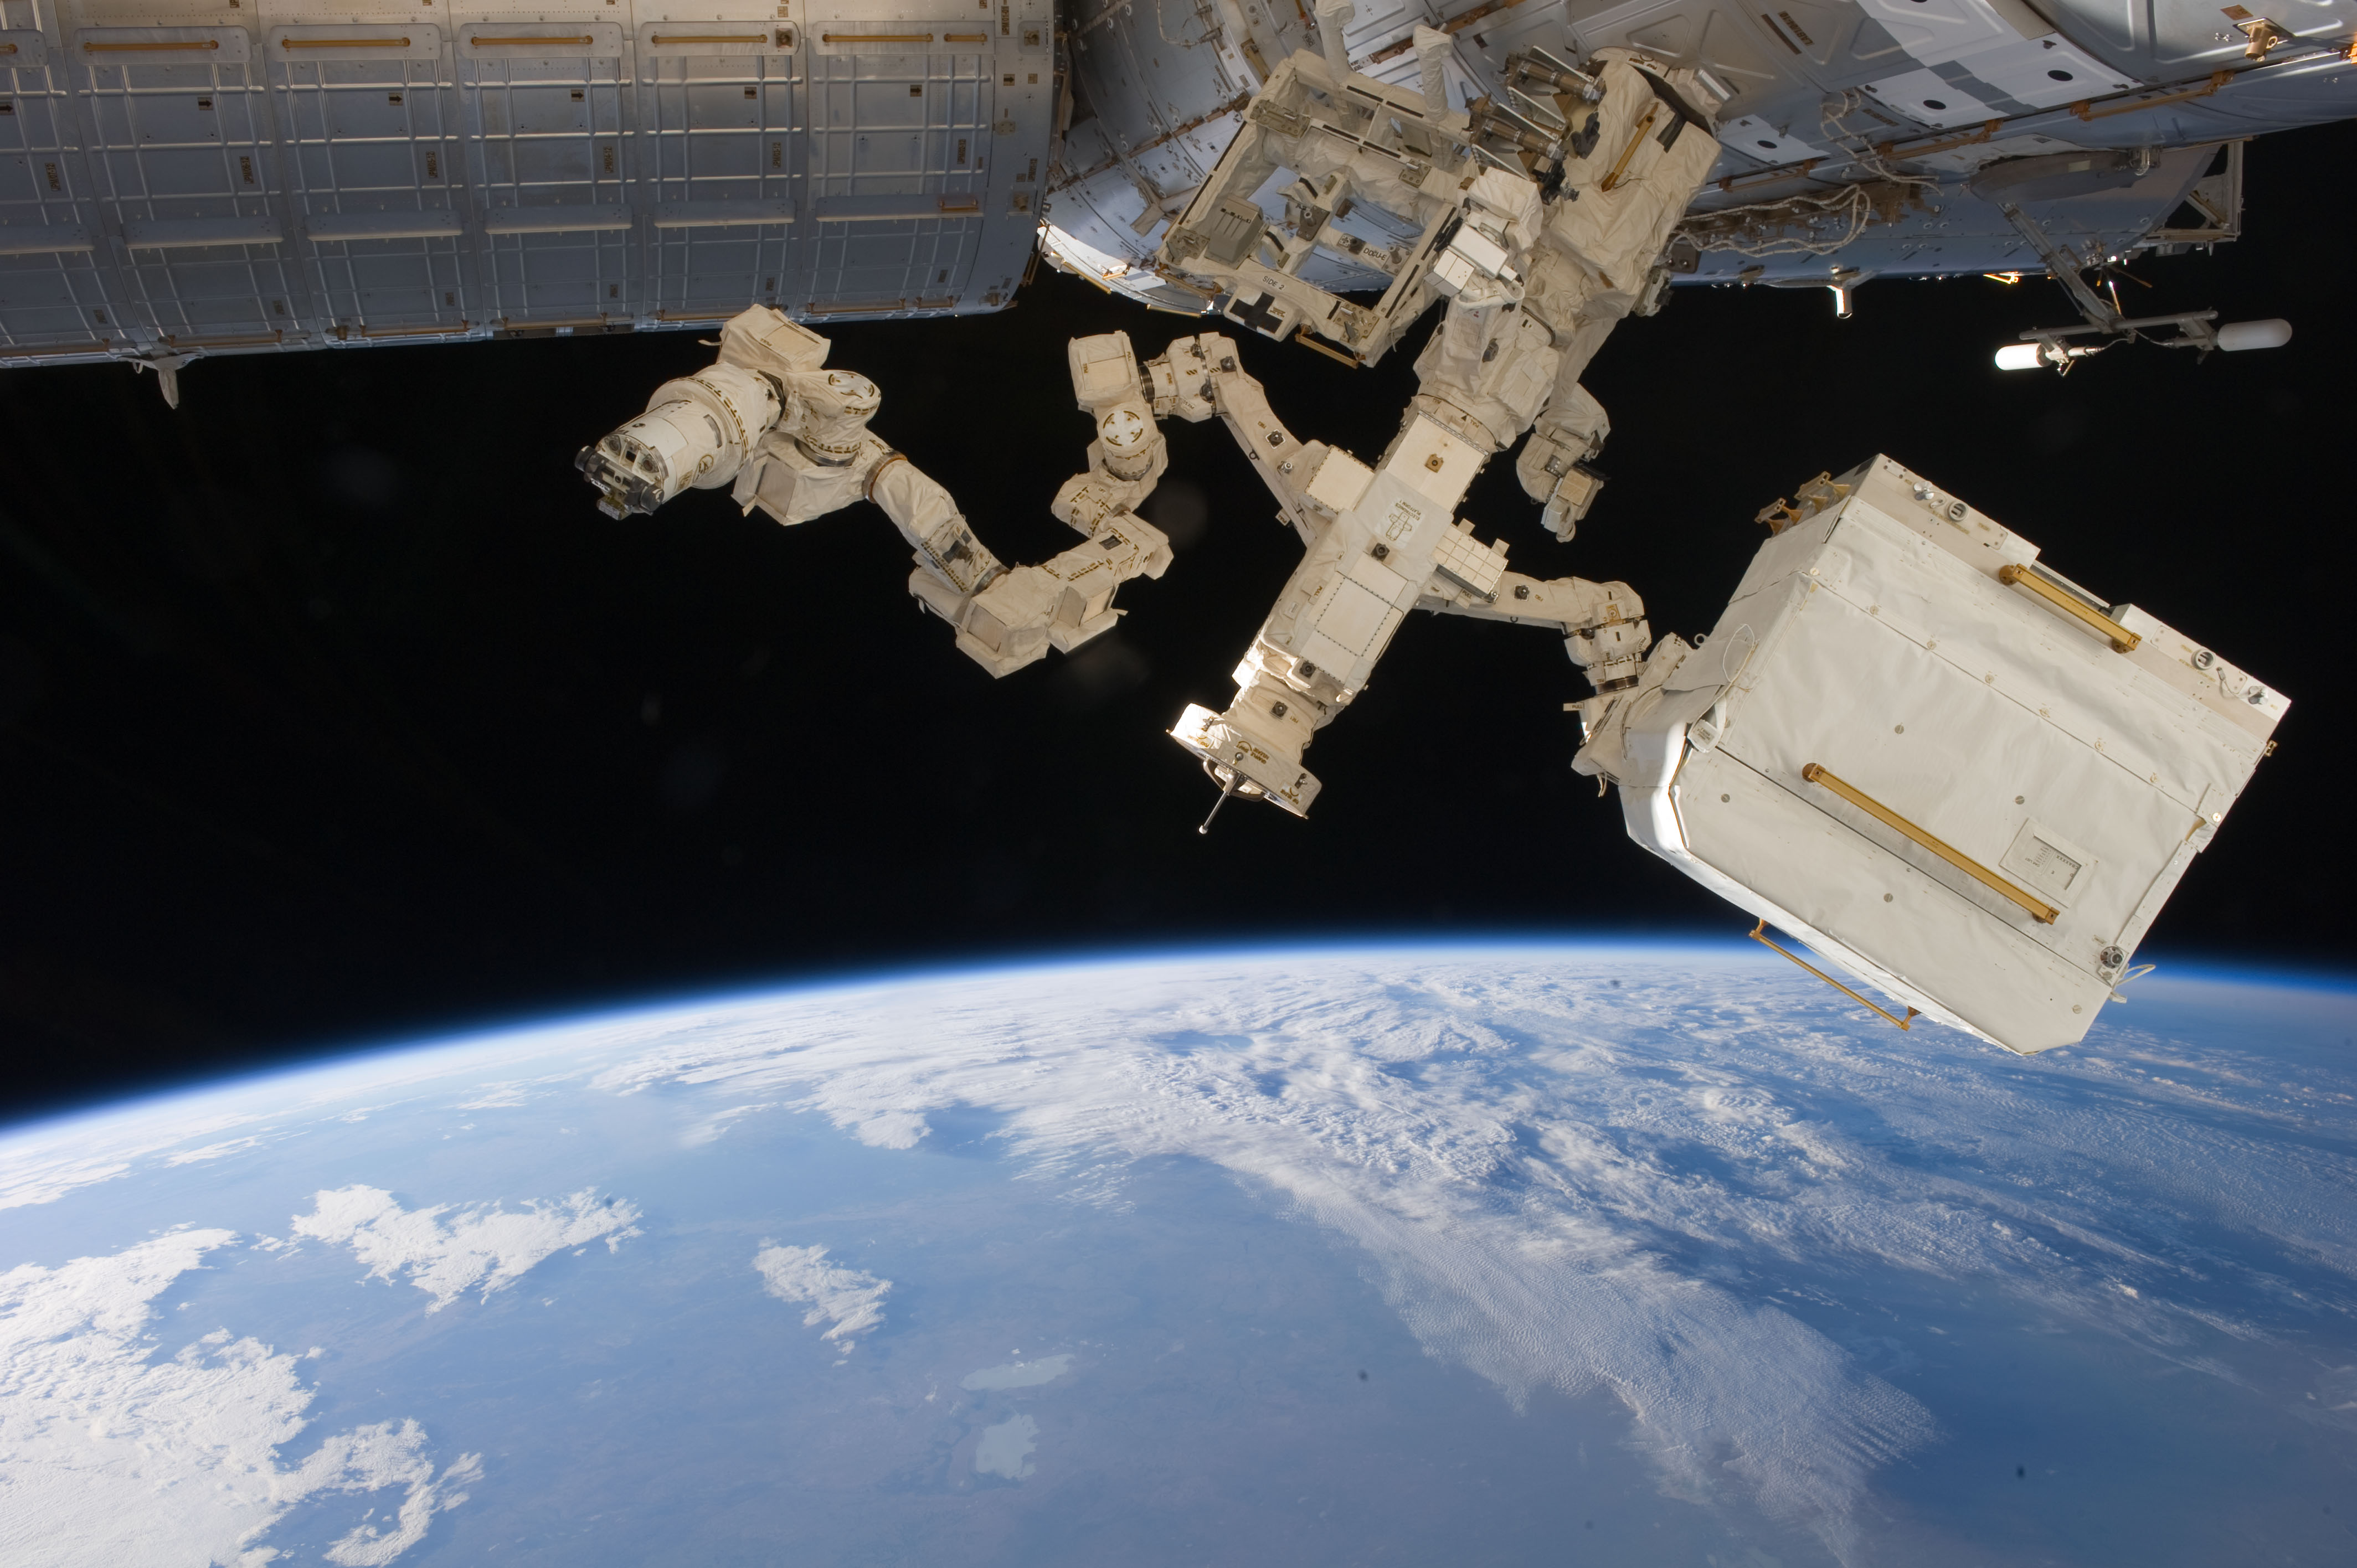 nasa iss robot new - photo #27